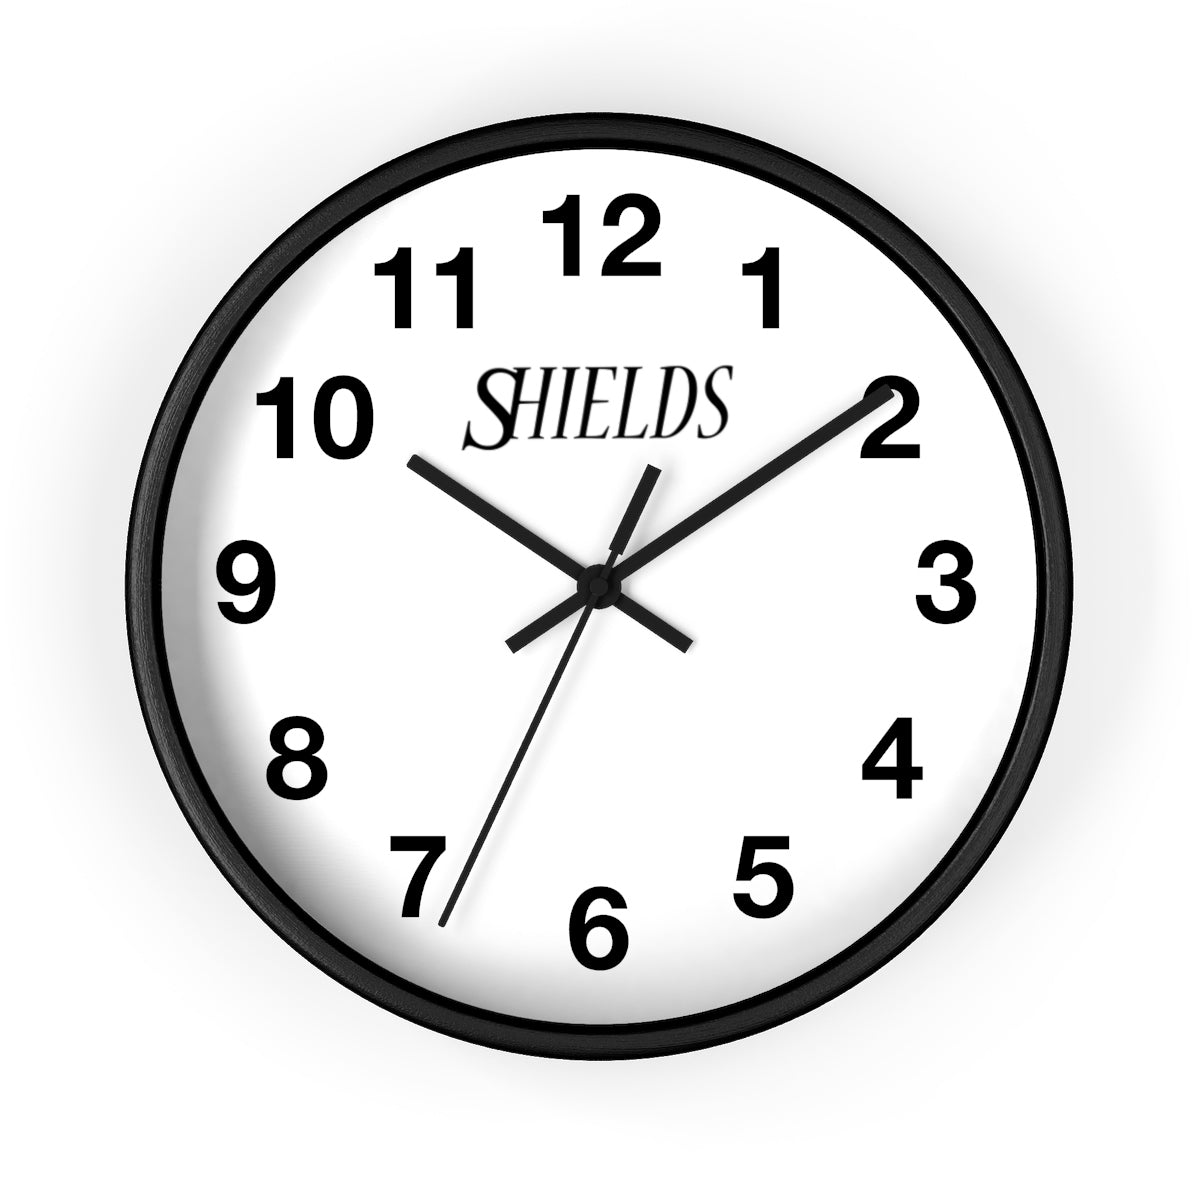 Shields Wall Clock Home Decor